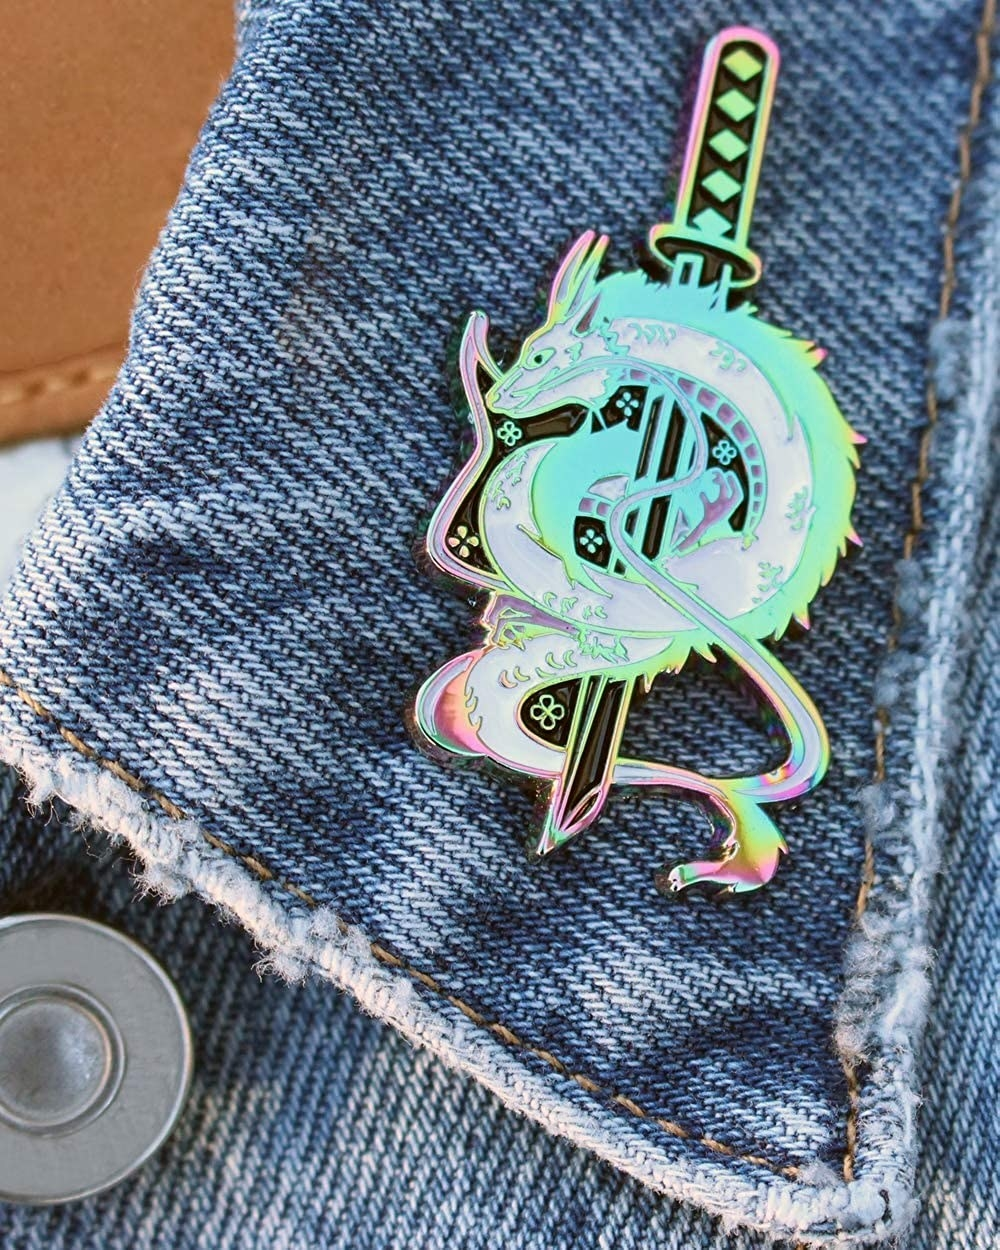 rainbow holographic enamel pin of Haku in dragon form wrapped around a sword, attached to the collar of a denim jacket